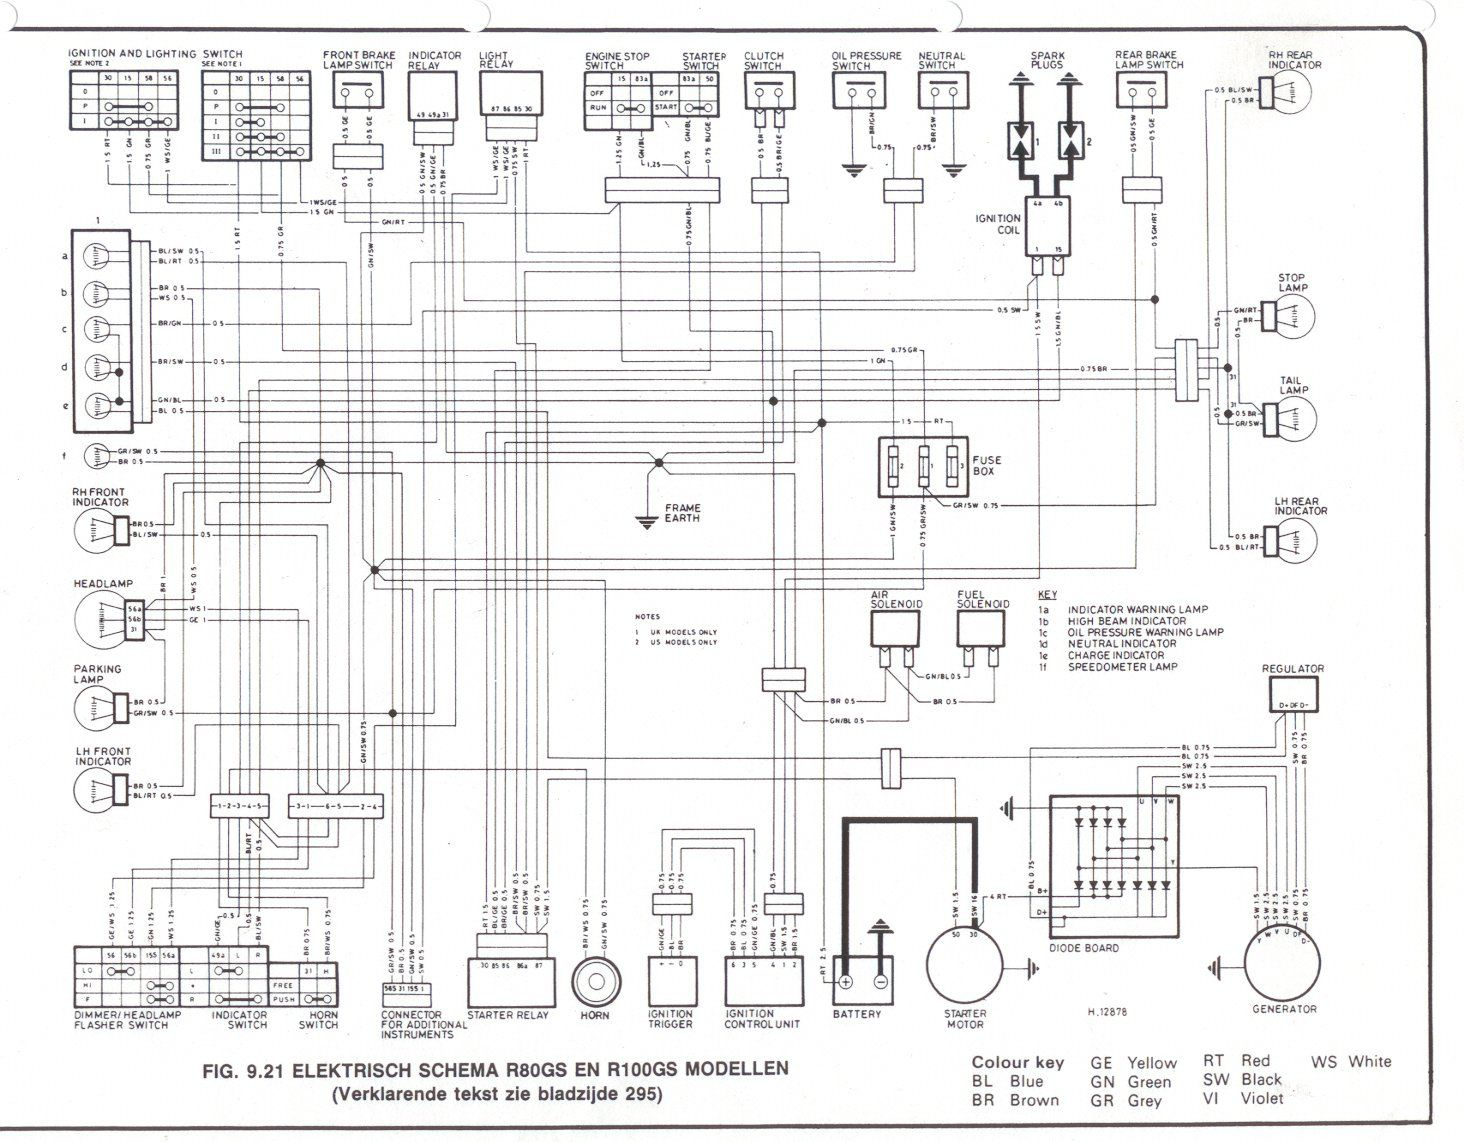 Bmw r1150r electrical wiring diagram #3 | Bmw | Electrical